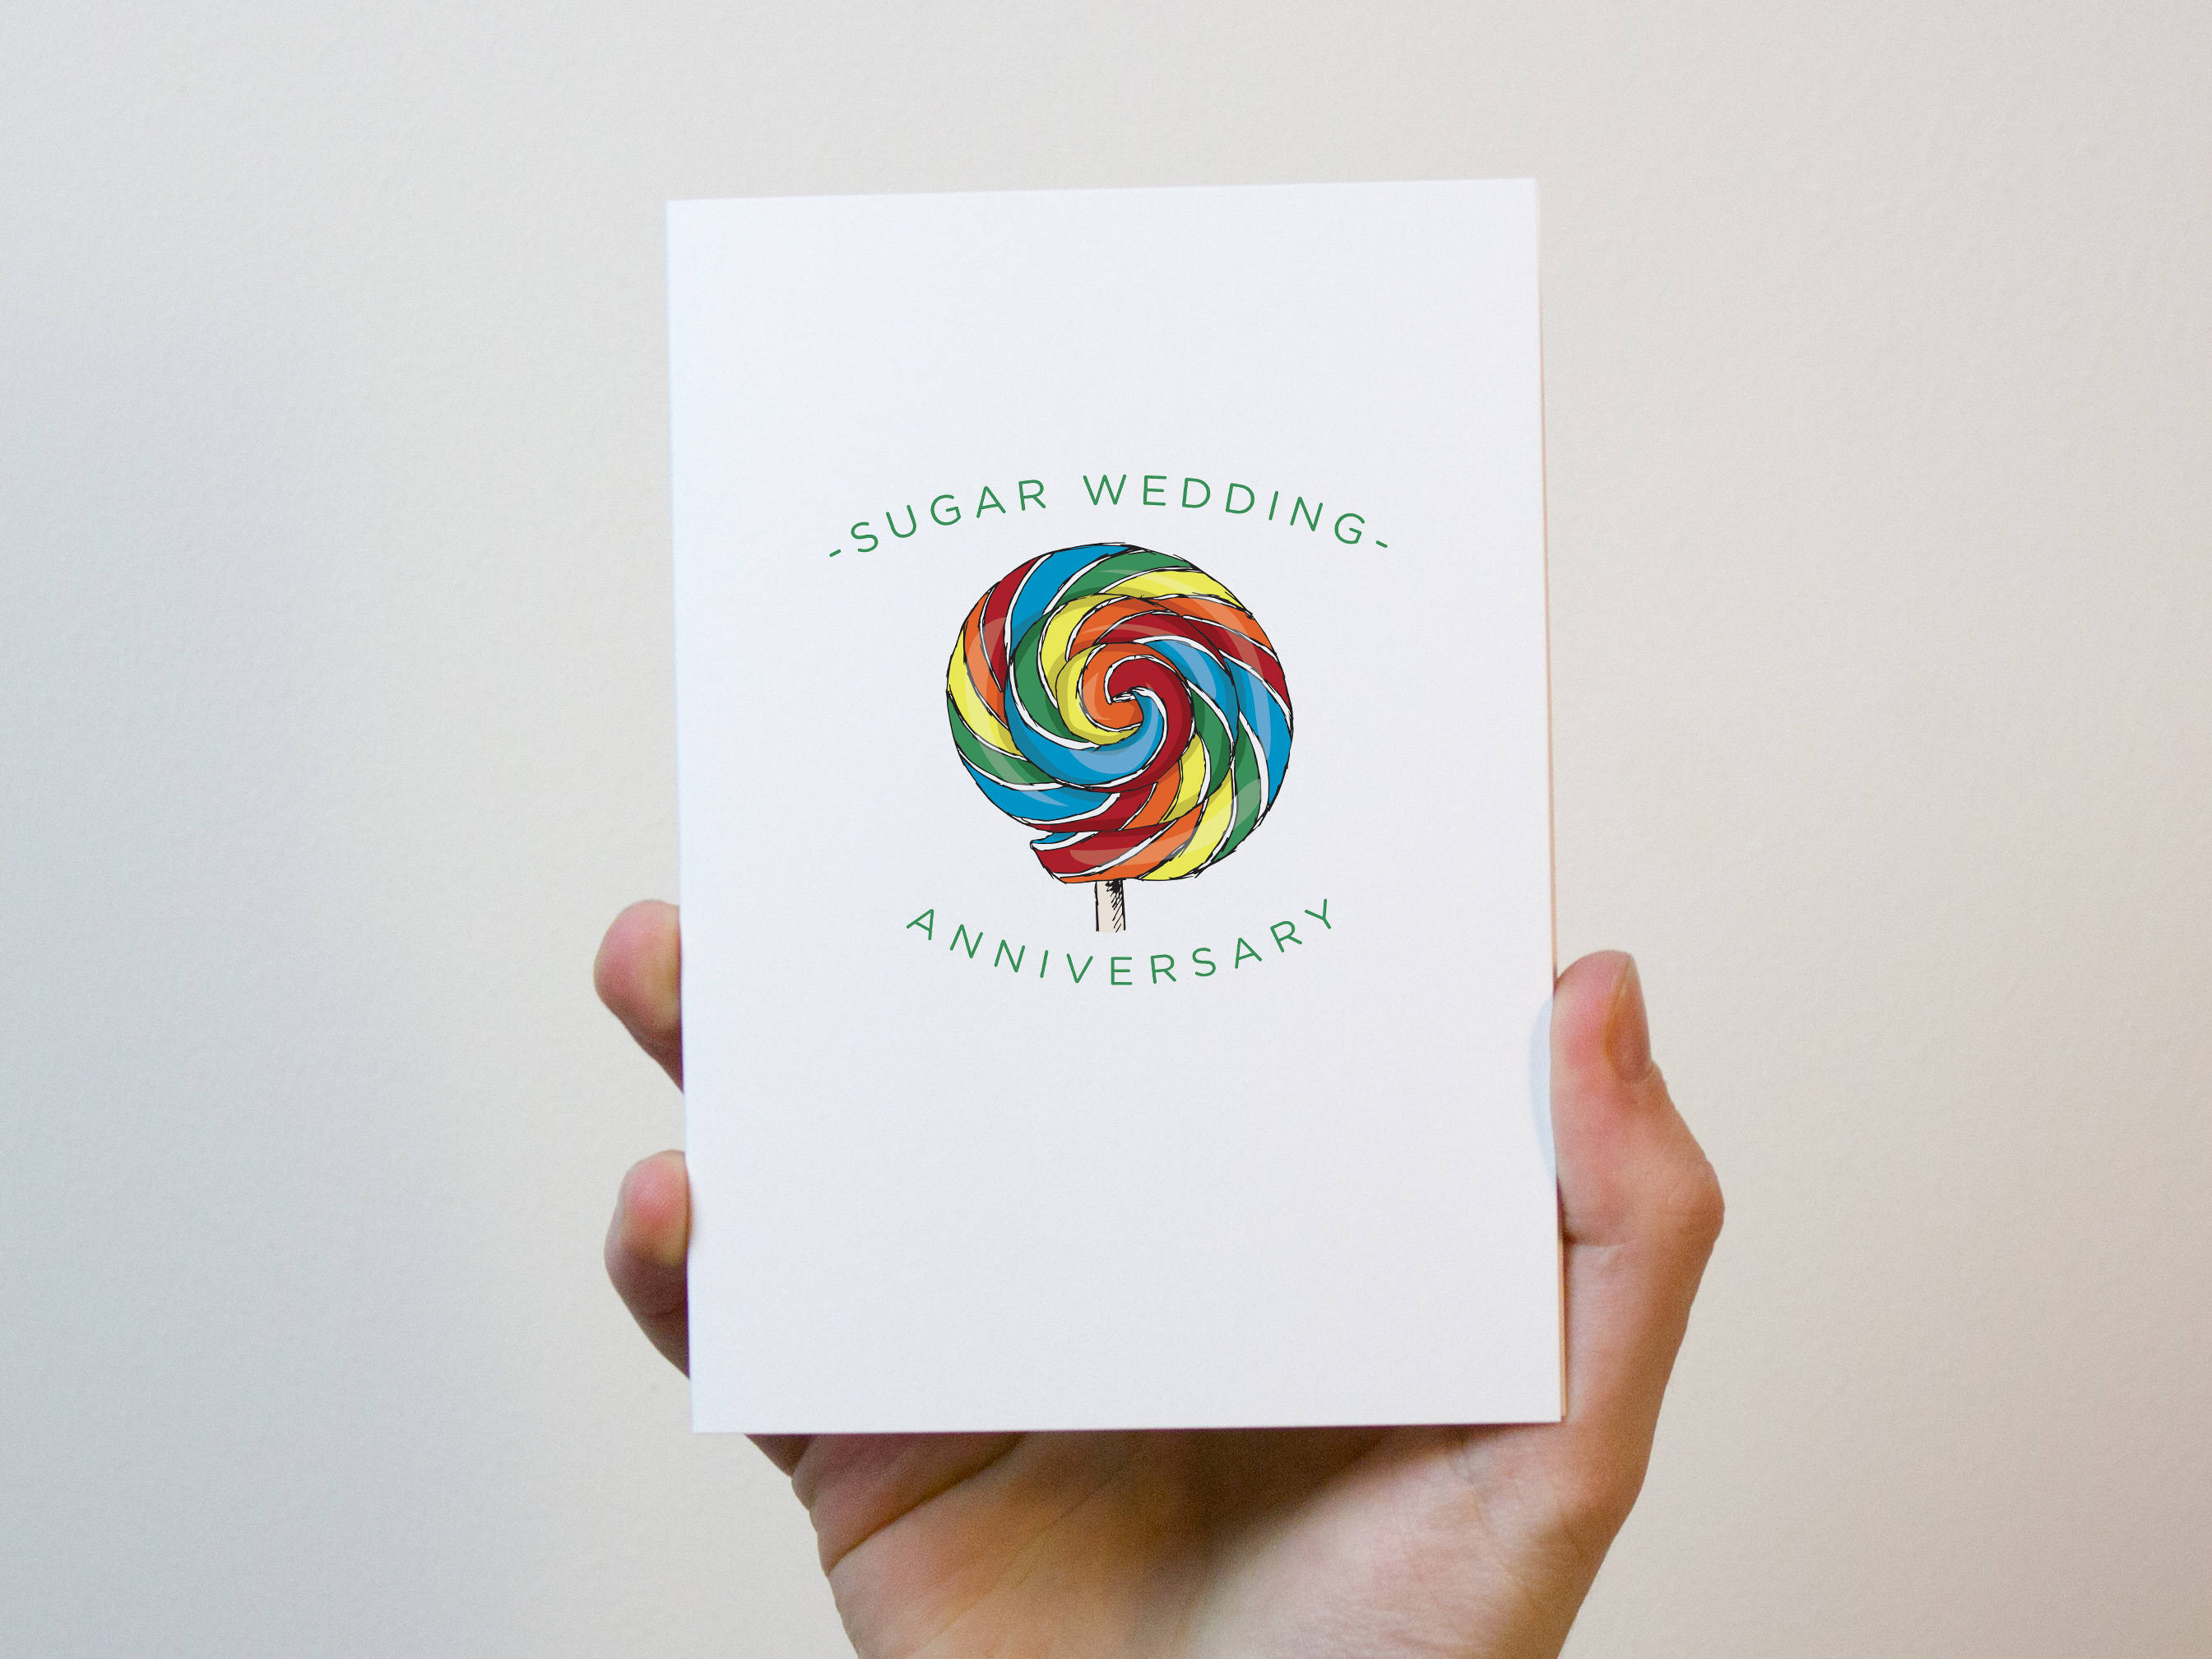 Wedding Anniversary Gifts 6 Years: Sugar Wedding Anniversary Card